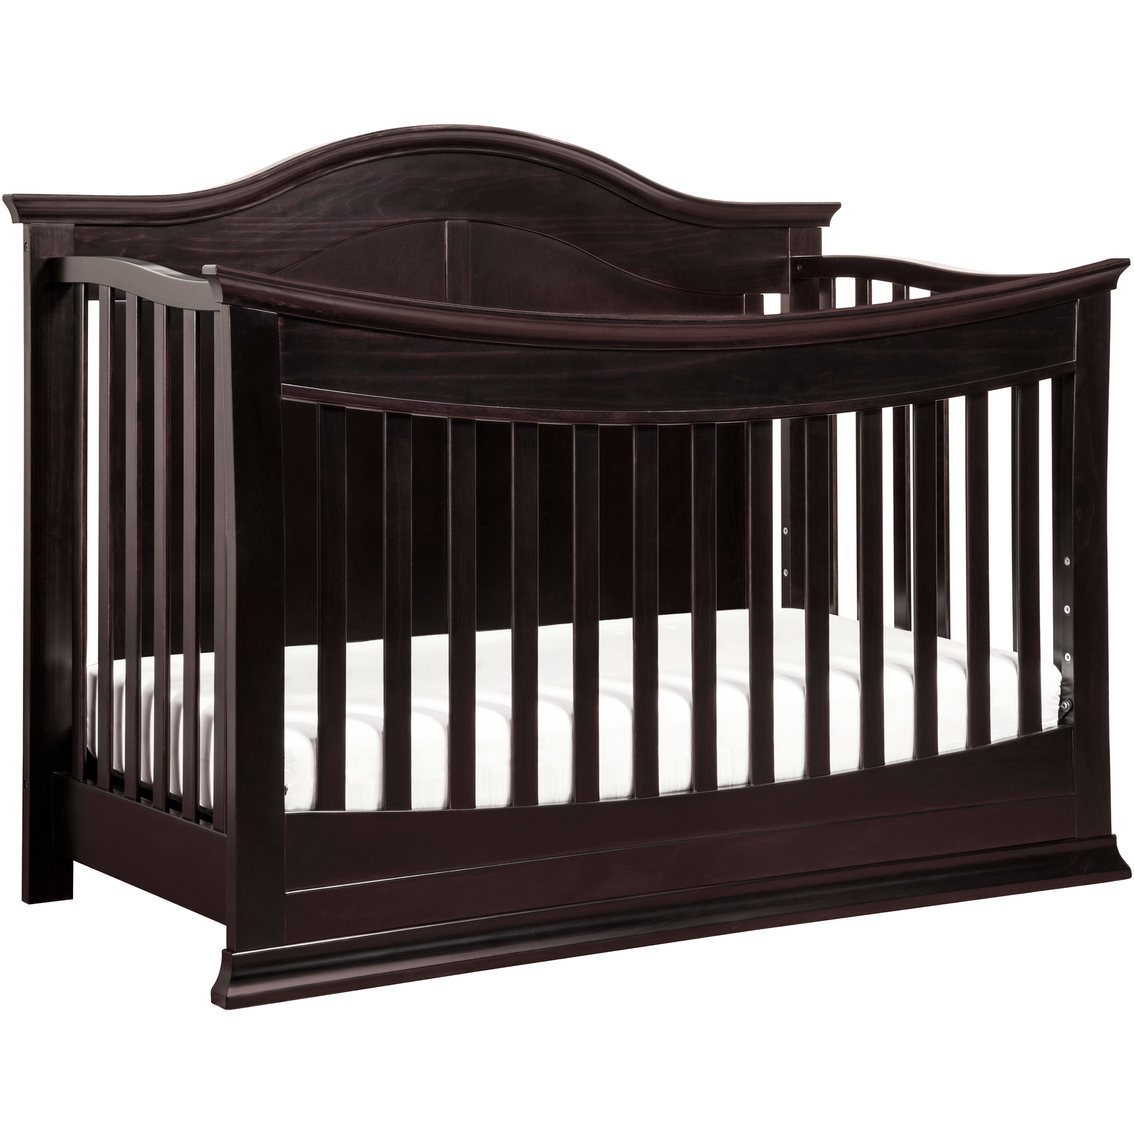 Davinci Meadow 4 In 1 Convertible Crib With Toddler Bed Conversion Kit Cribs Baby Toys Shop The Exchange